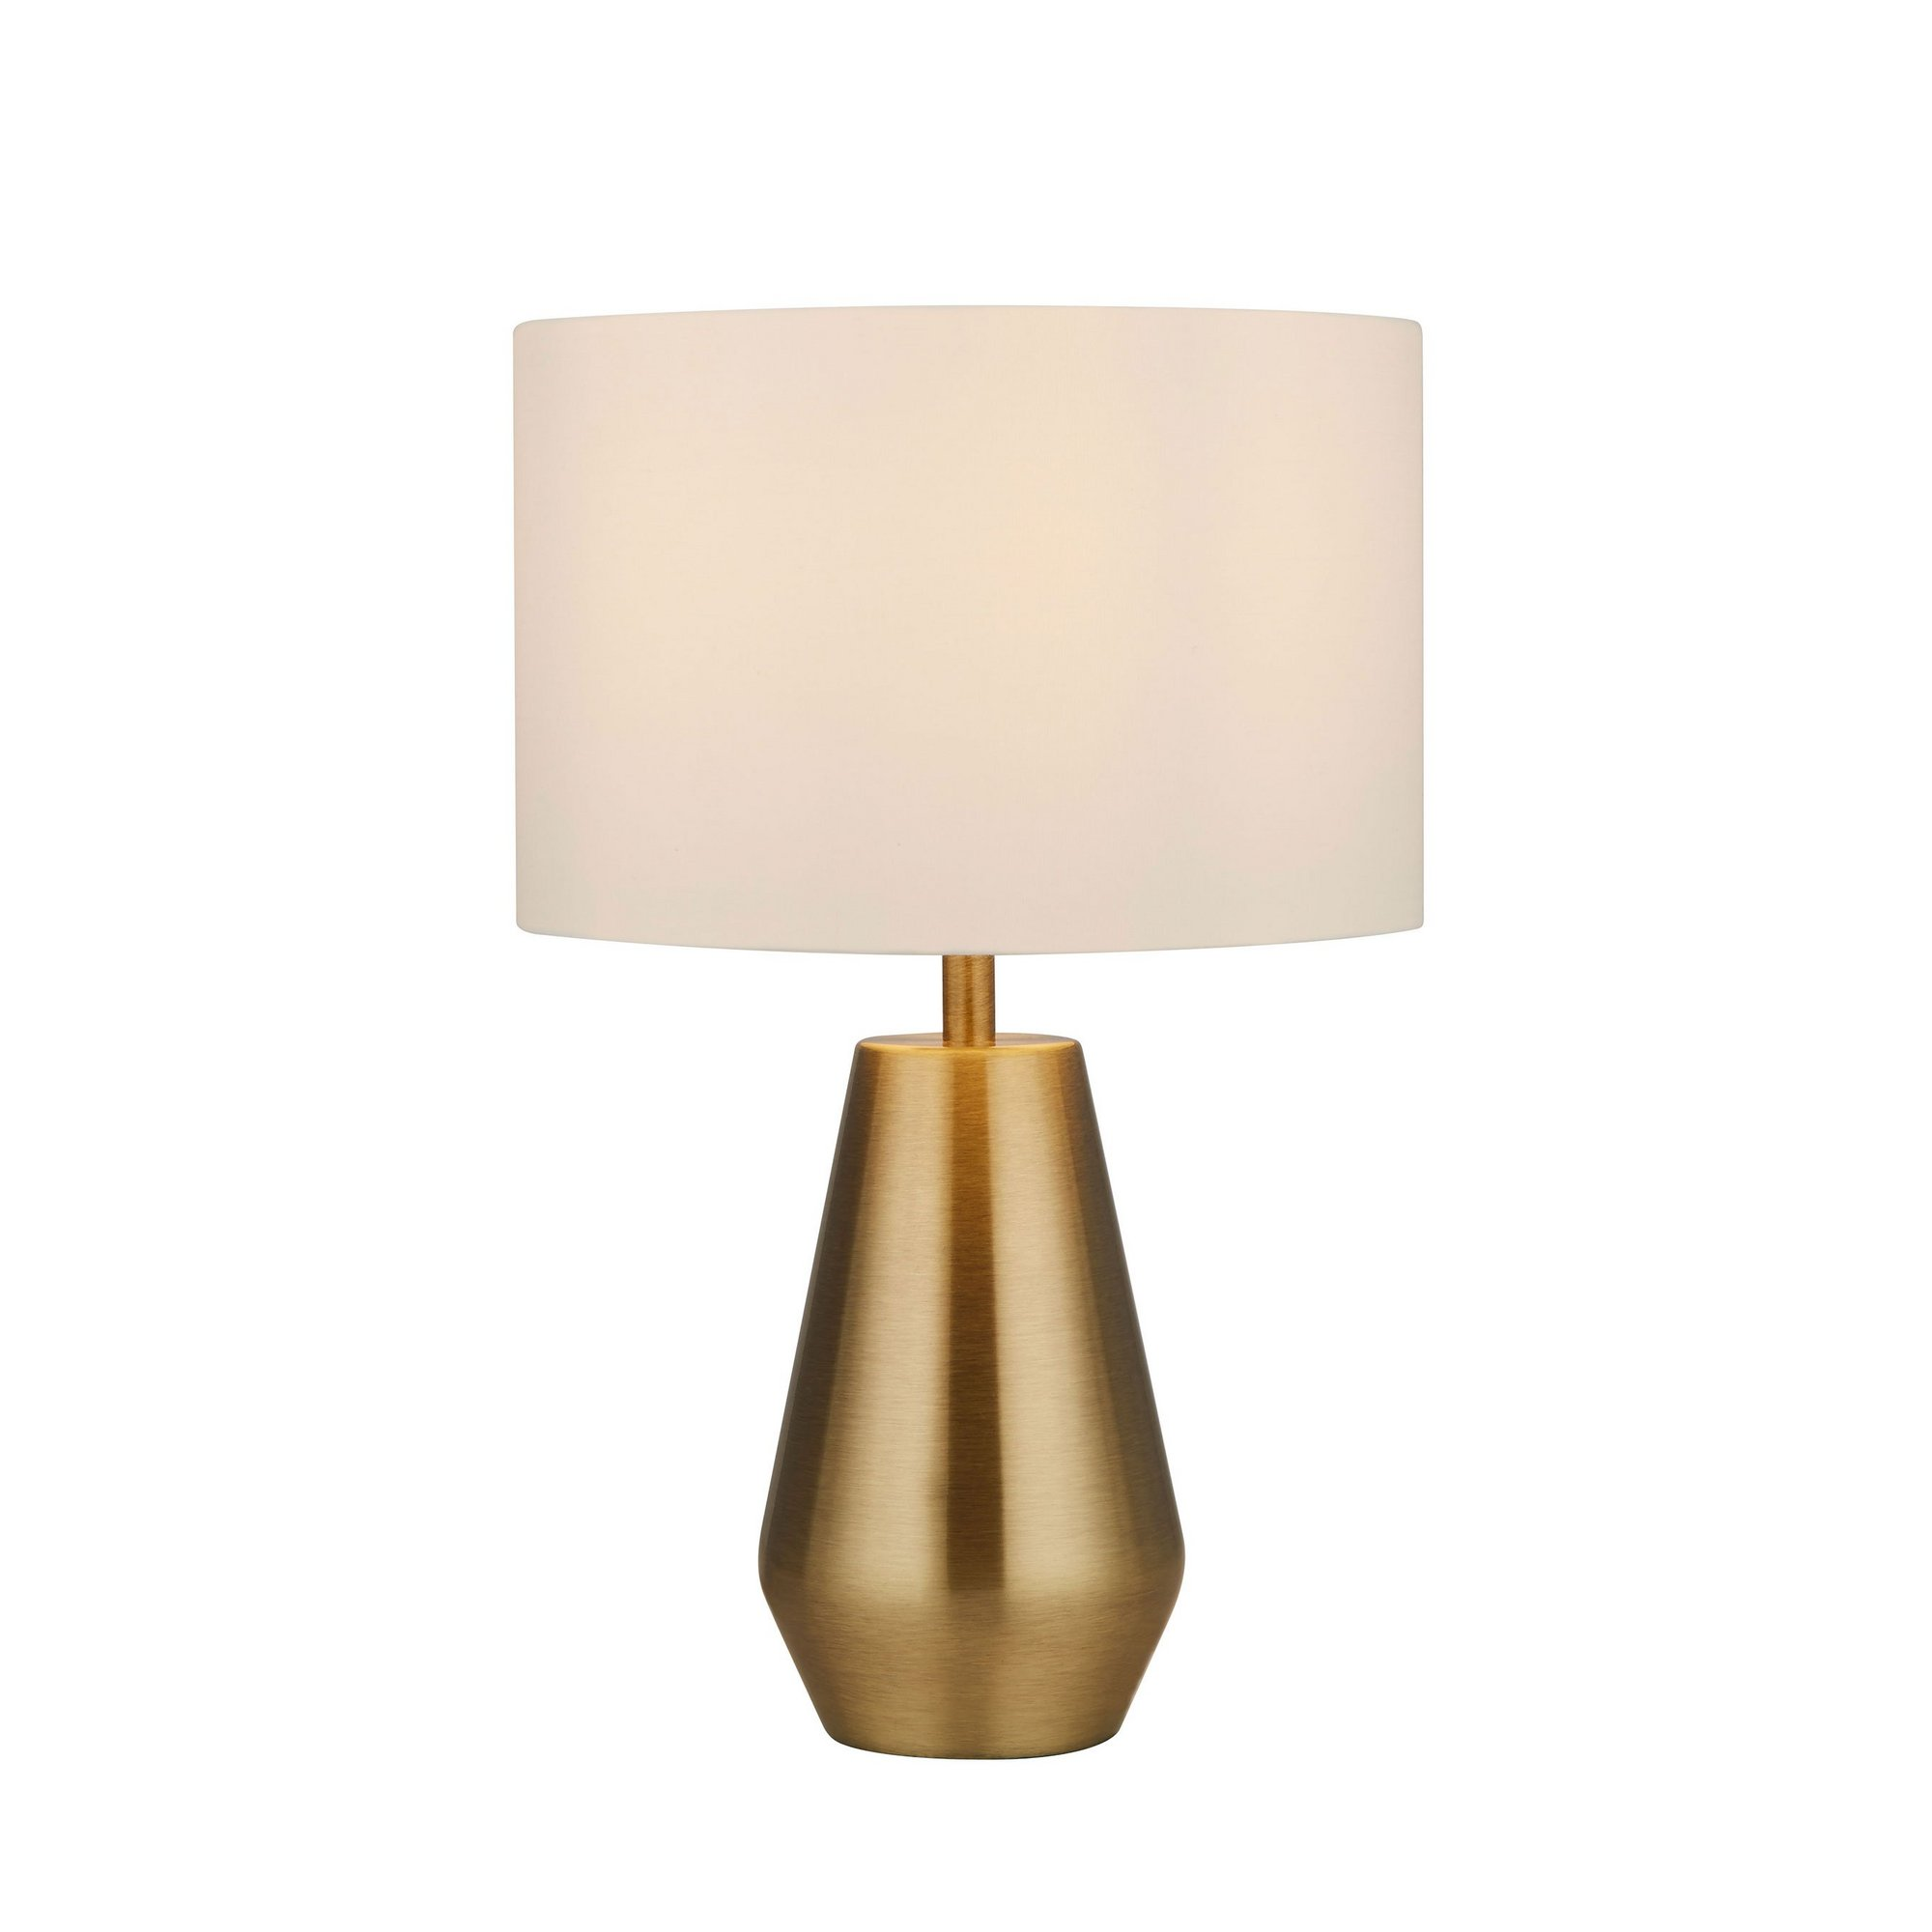 Image of Aidy Pair of Touch Table Lamps